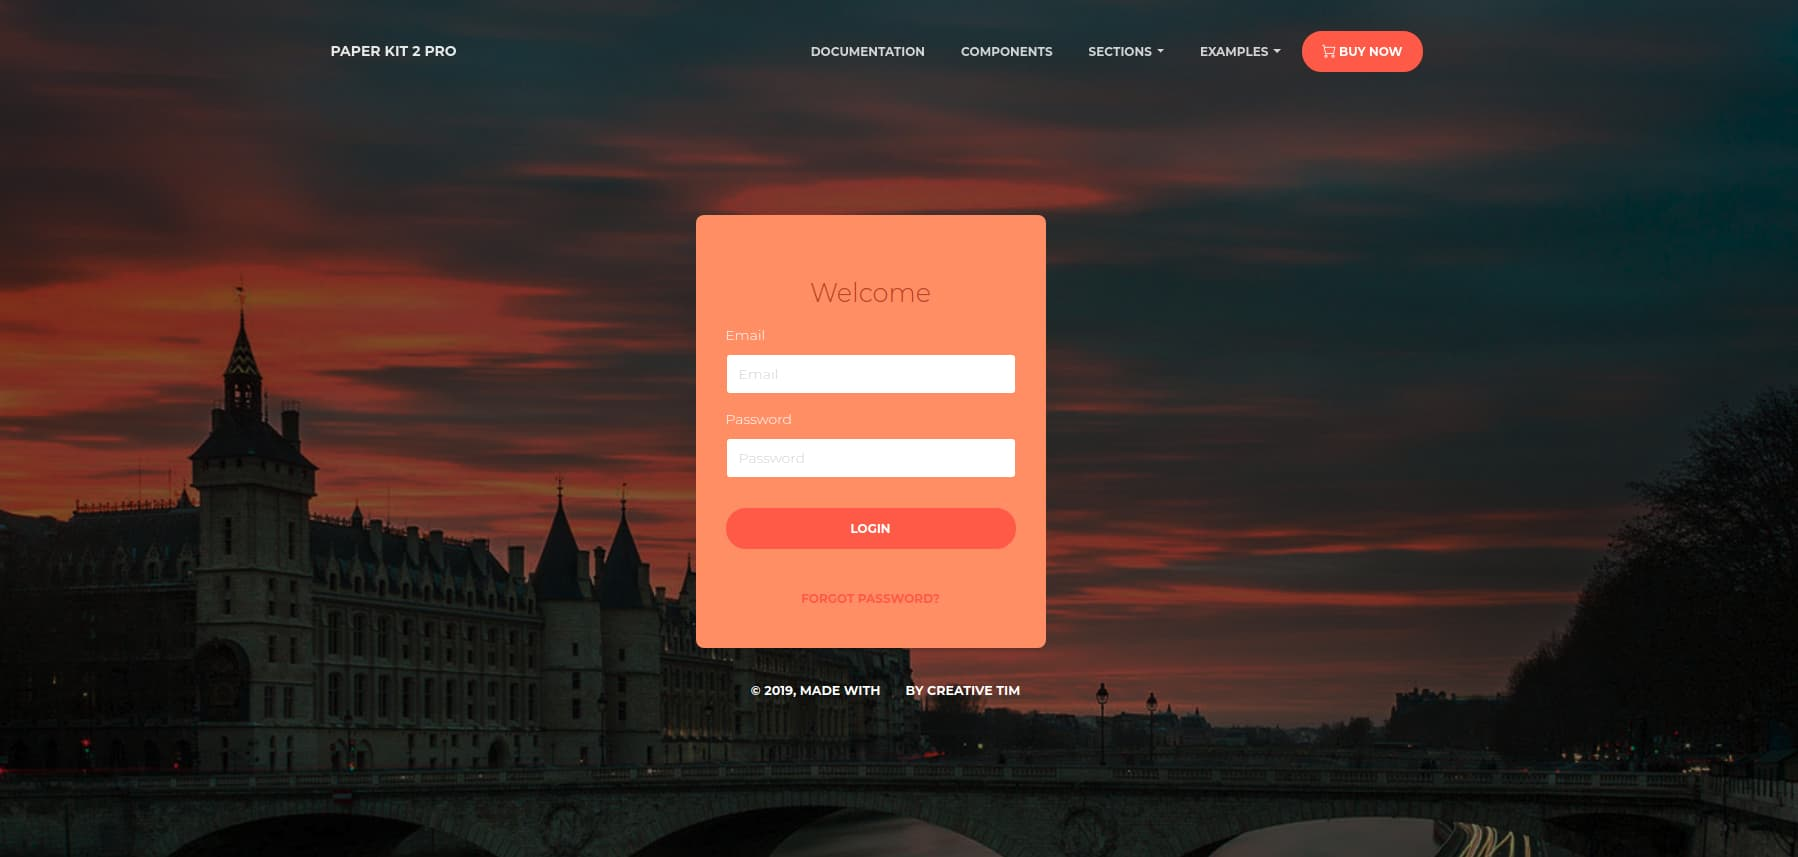 paperkit 2 pro login page template